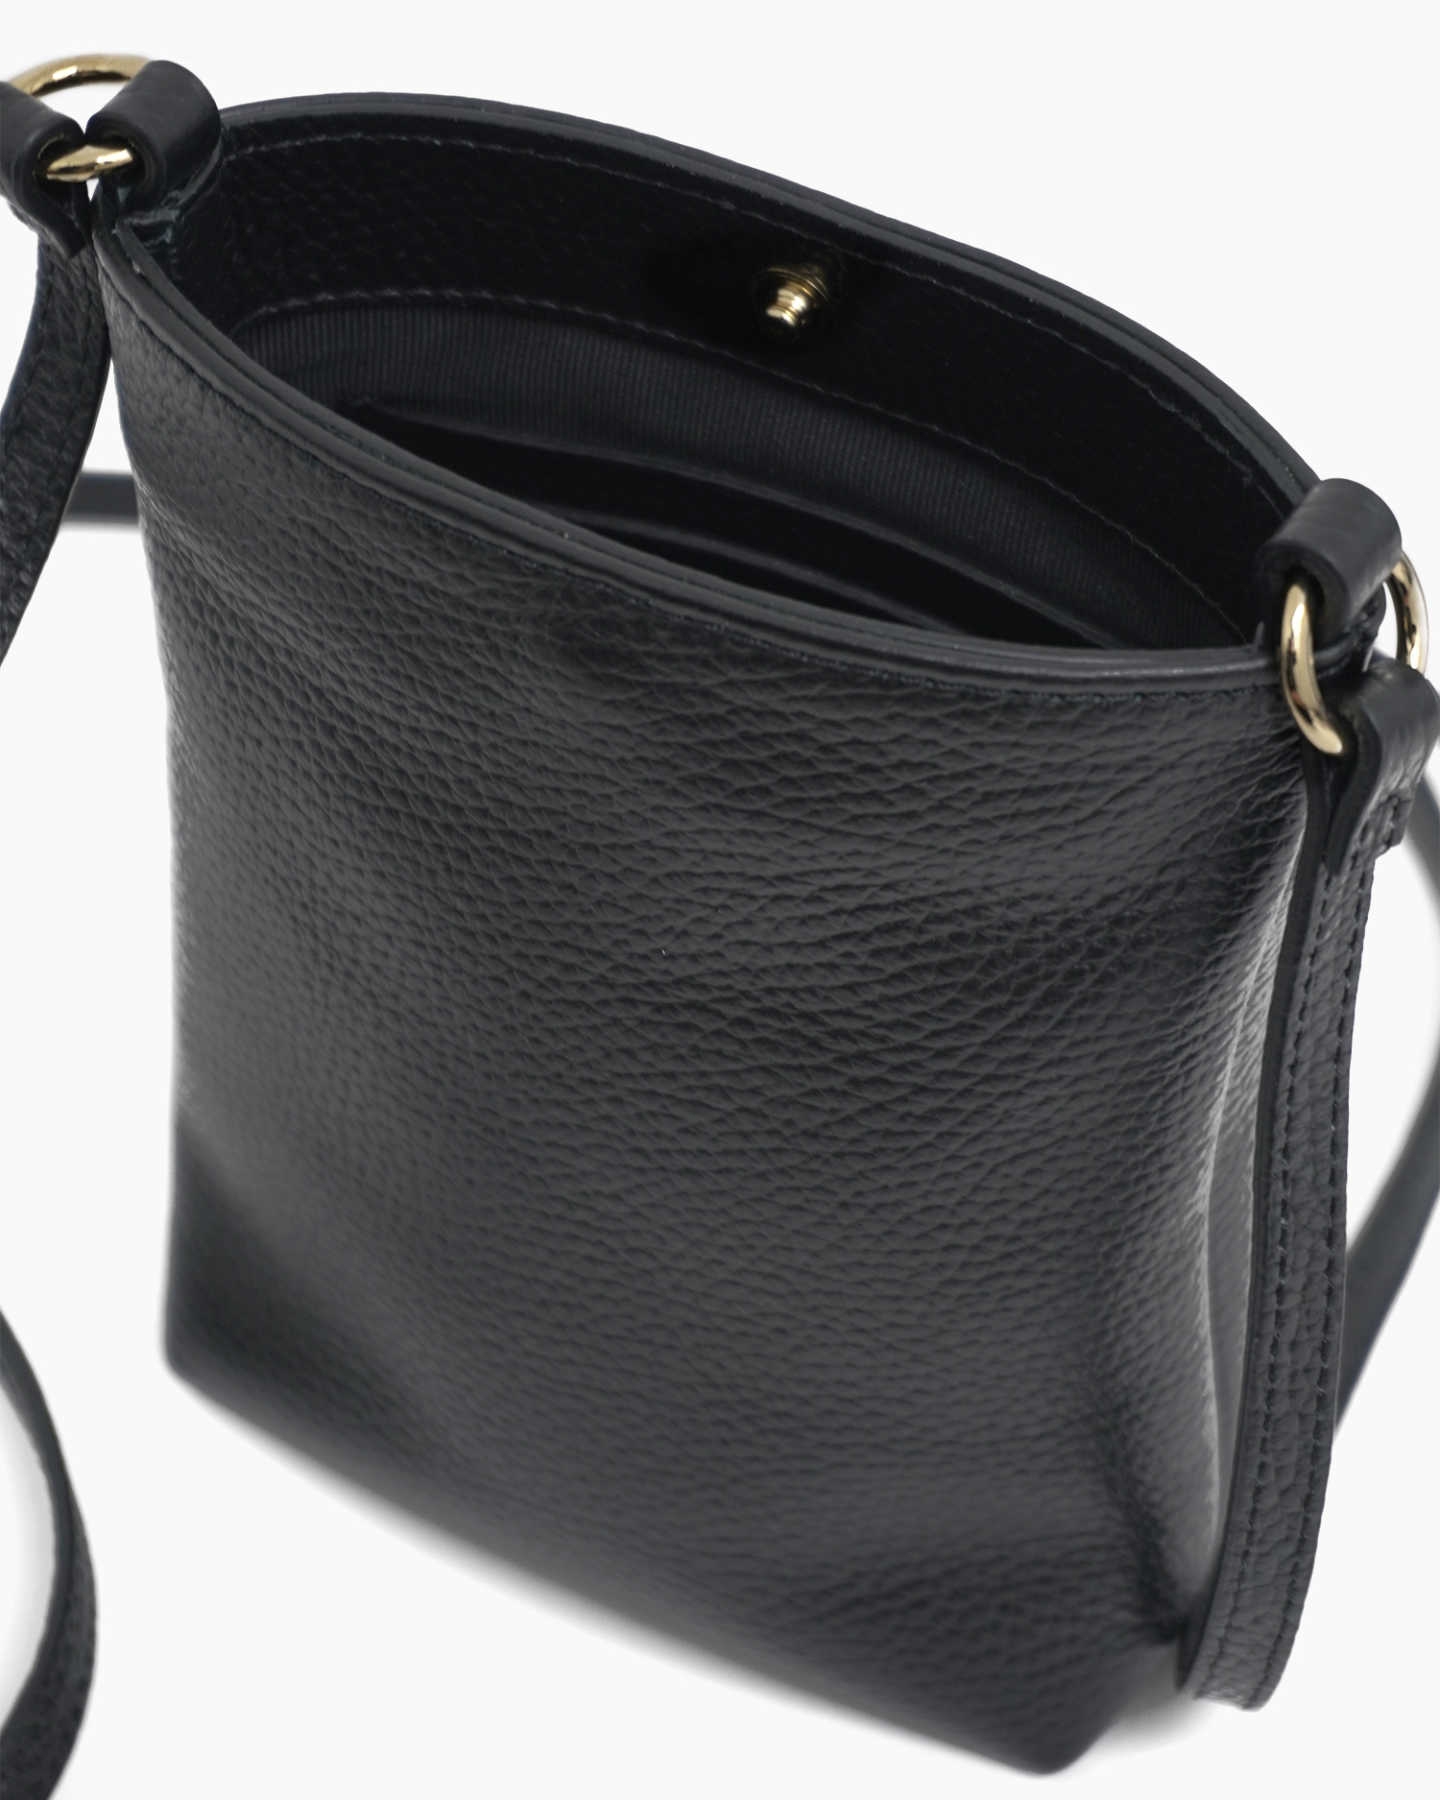 Italian Pebbled Leather Phone Crossbody - Black - 8